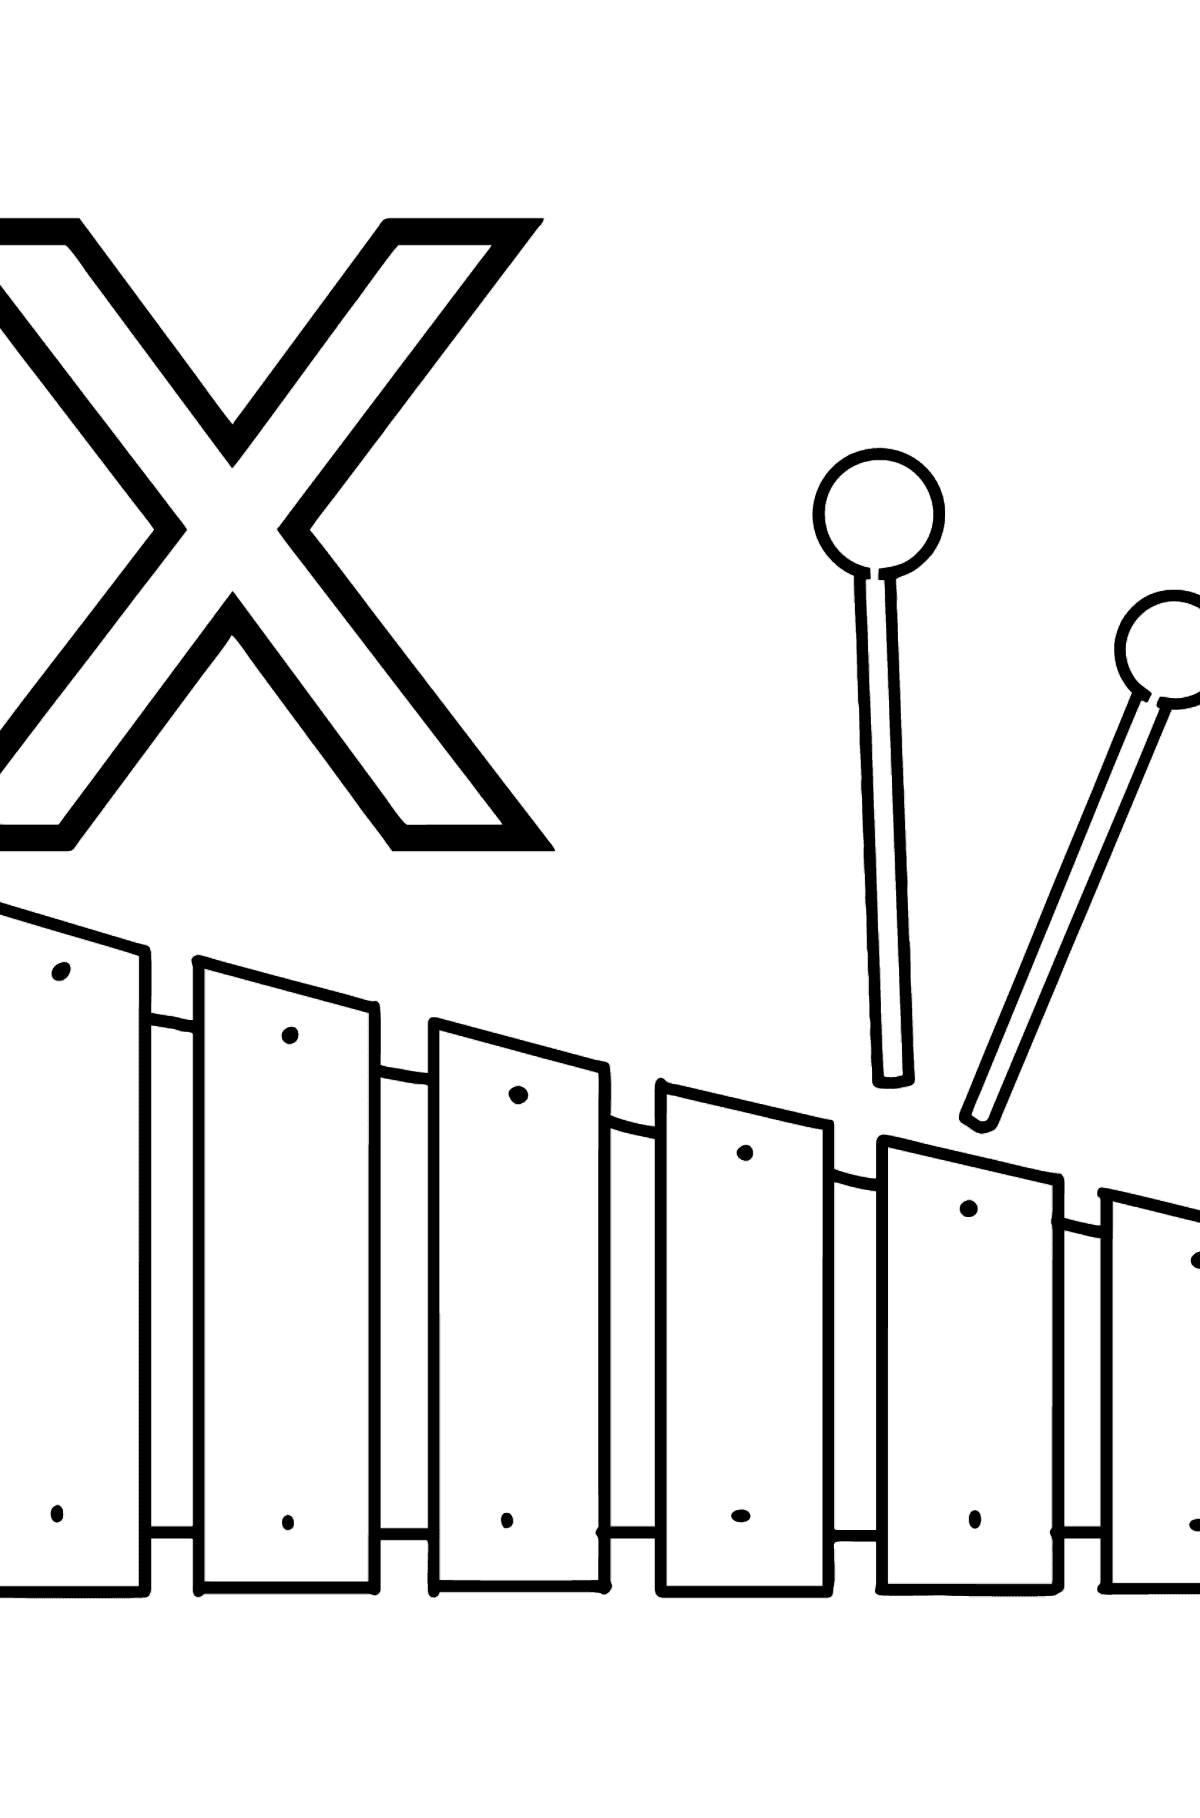 German Letter X coloring pages - XYLOPHON - Coloring Pages for Kids